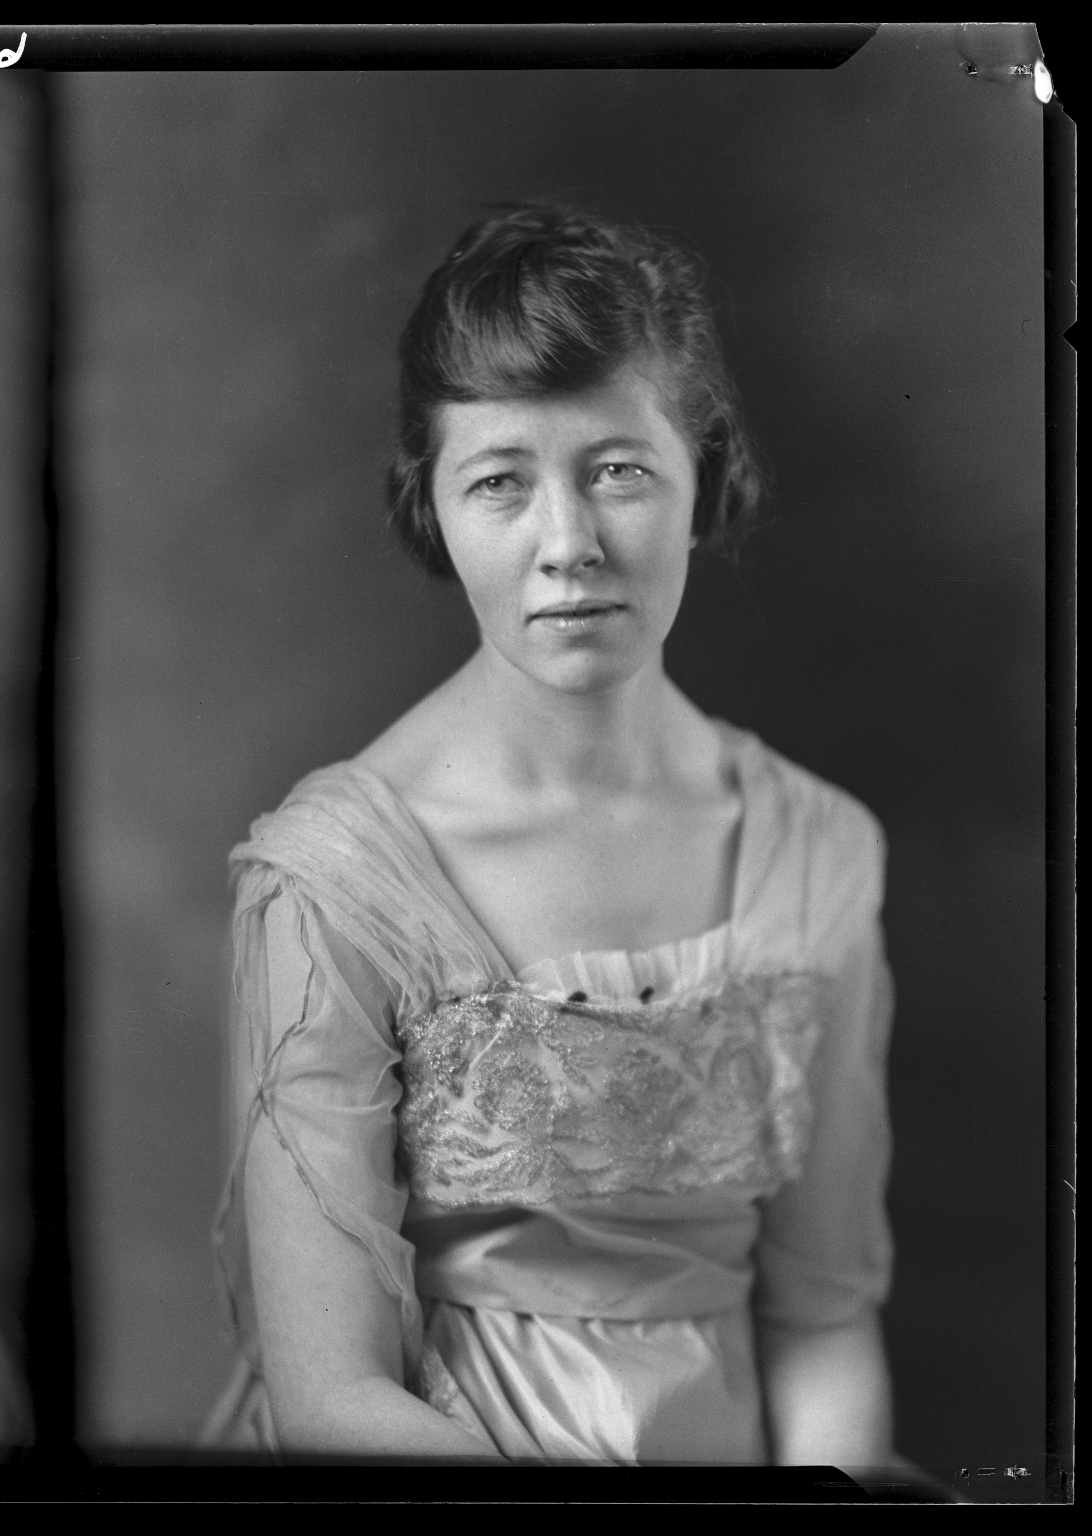 Portraits of Ruth Kistler